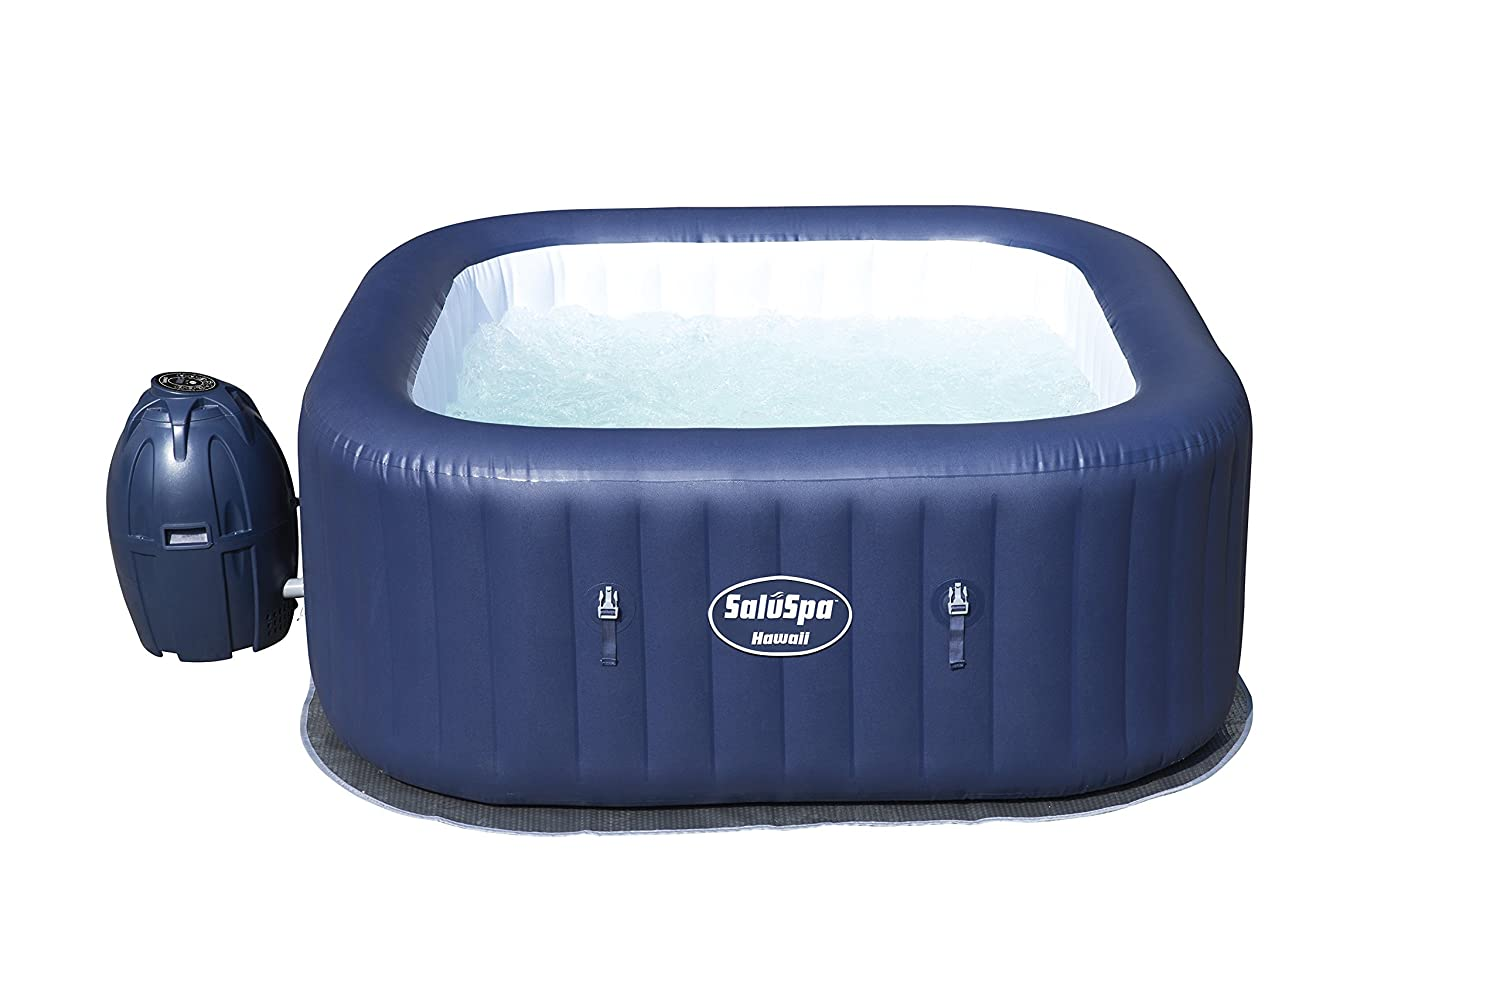 Outdoor Hot Tubs Deals: Bestway 54155E Hawaii Air Jet Inflatable ...